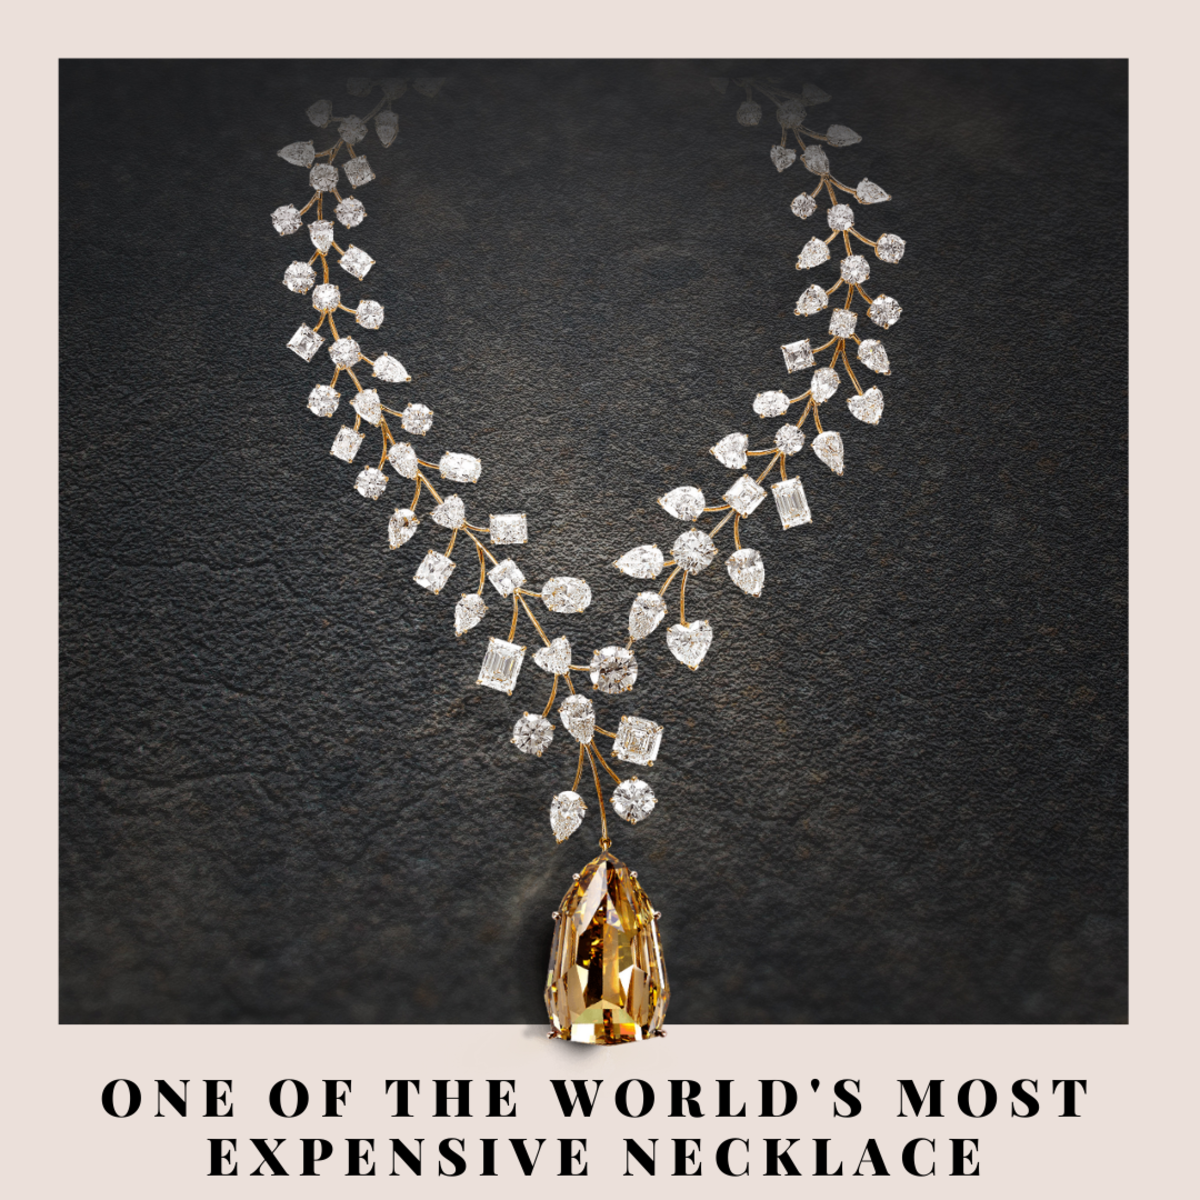 This stunning 637-carat L'Incomparable diamond necklace was sold for a record-breaking US$55 million in 2013 and at that time, was named the world's most expensive necklace by Guinness World Records